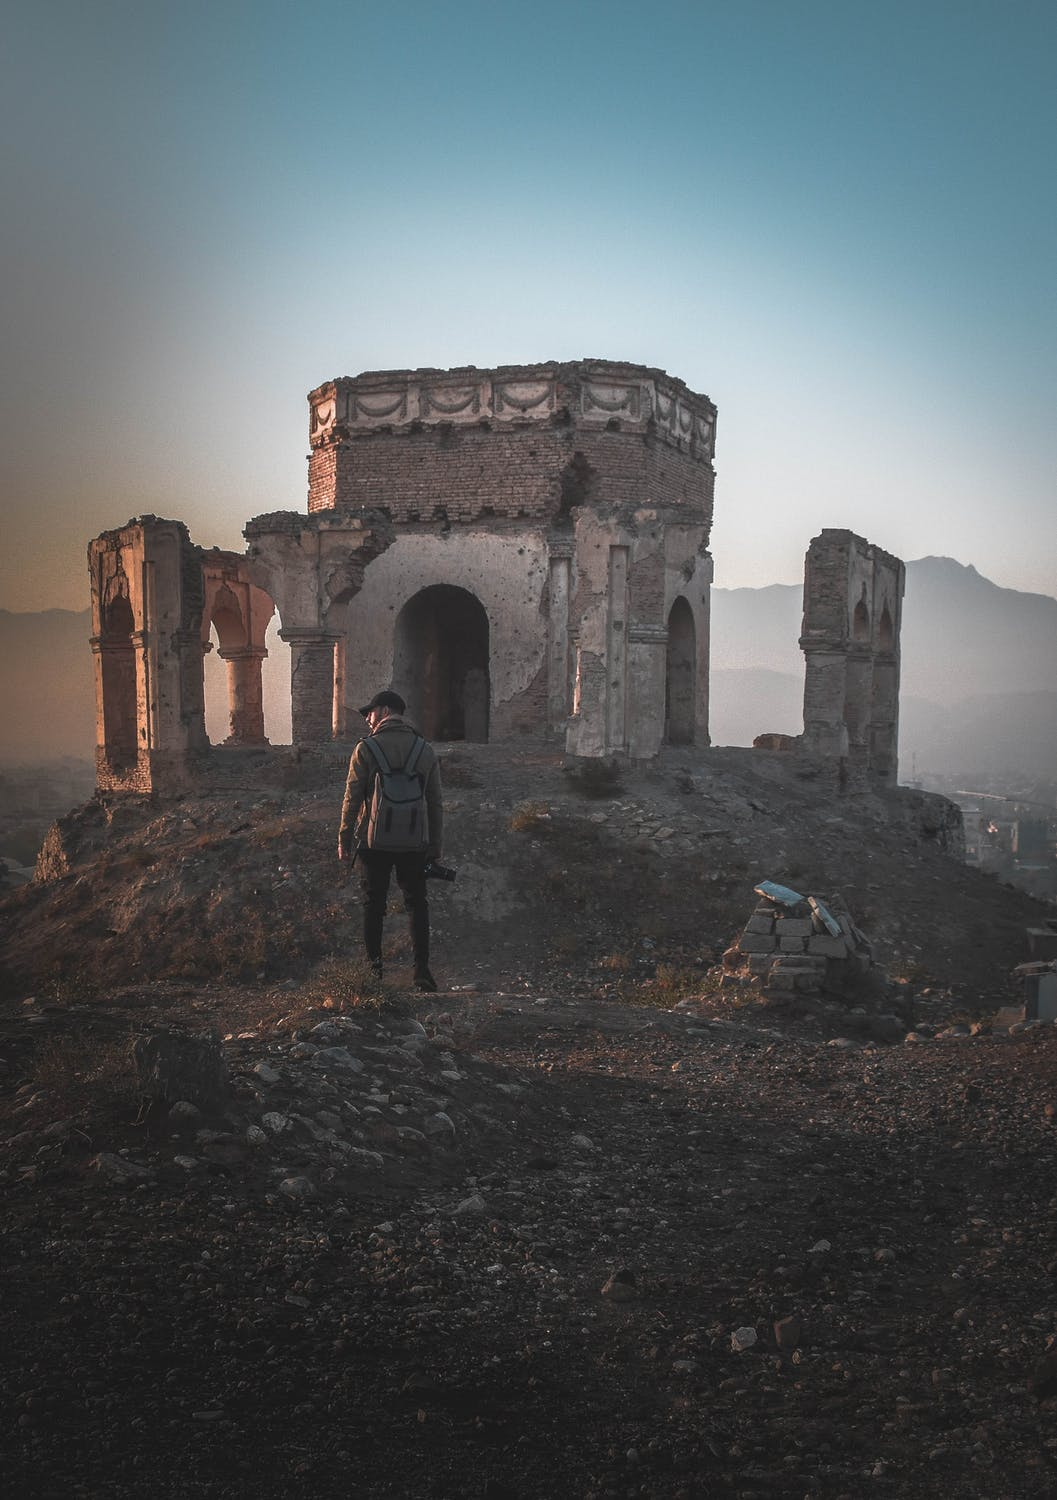 Old Ruins - photo by Suliman Sallehi (pexels.com)